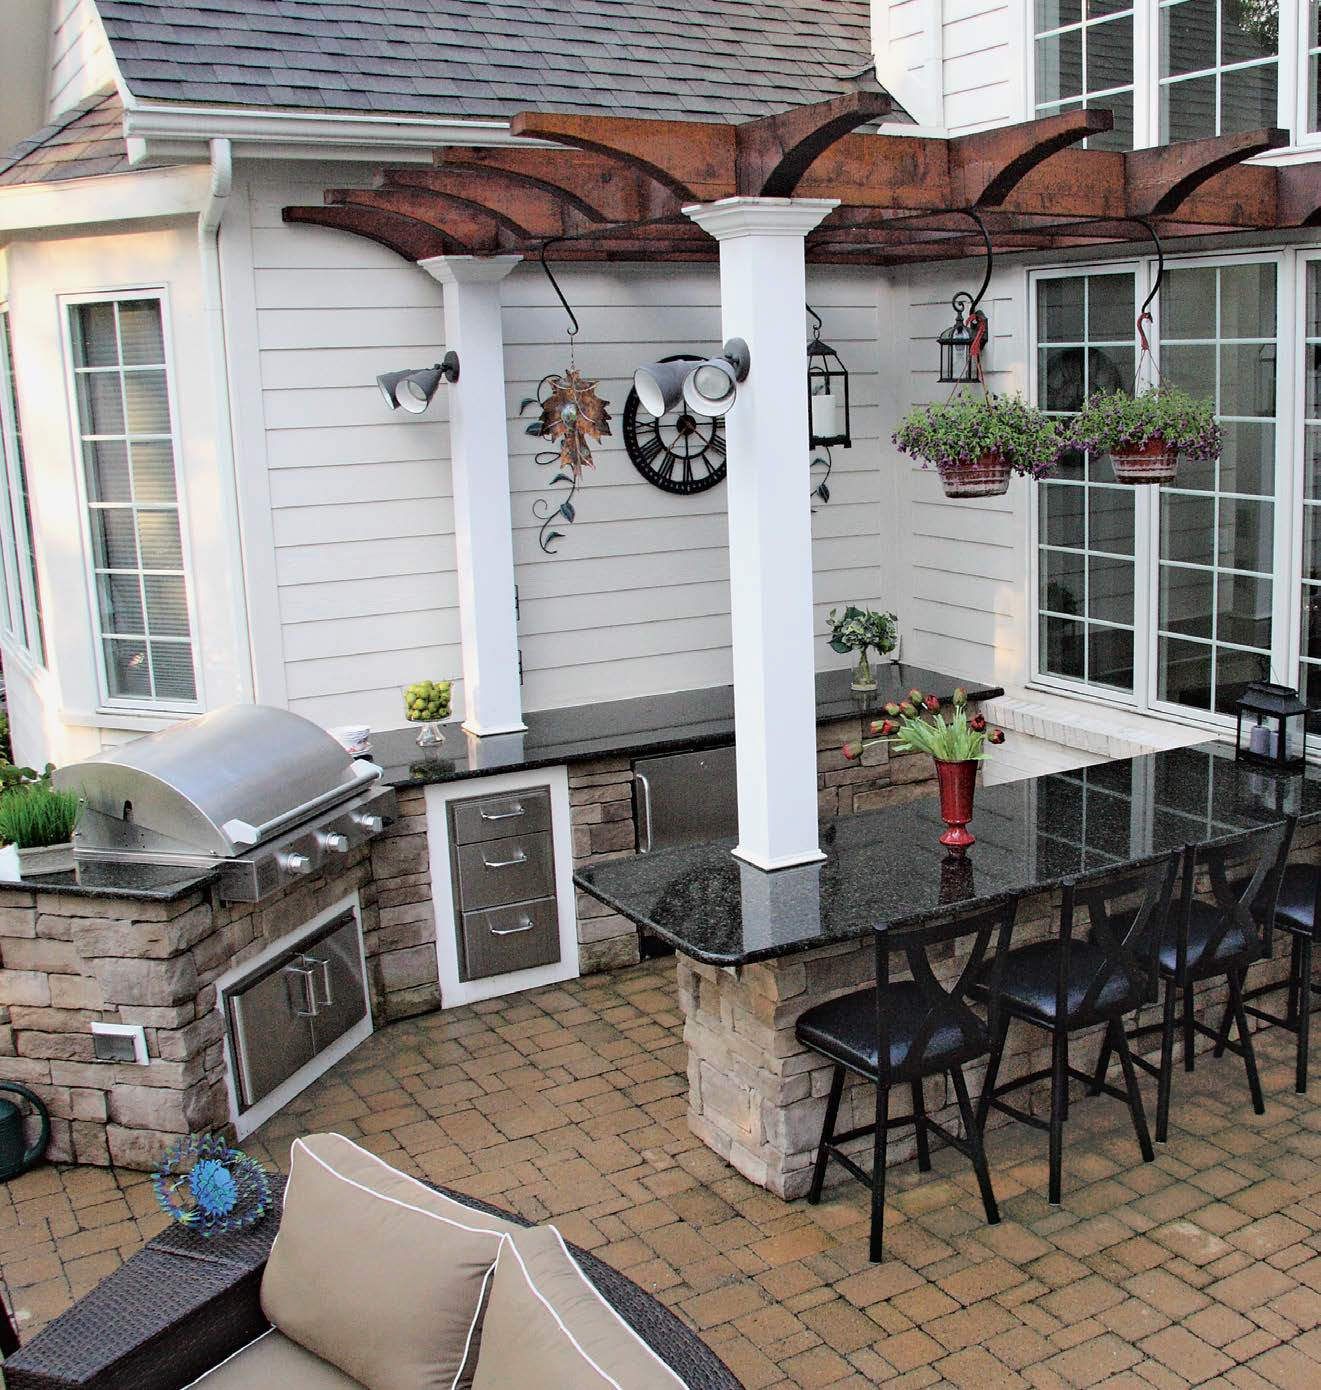 backyard kitchen designs dining 135 outdoor ideas and for 2018 decorating check out these 100 as well discover the different types key features needed to create a proper